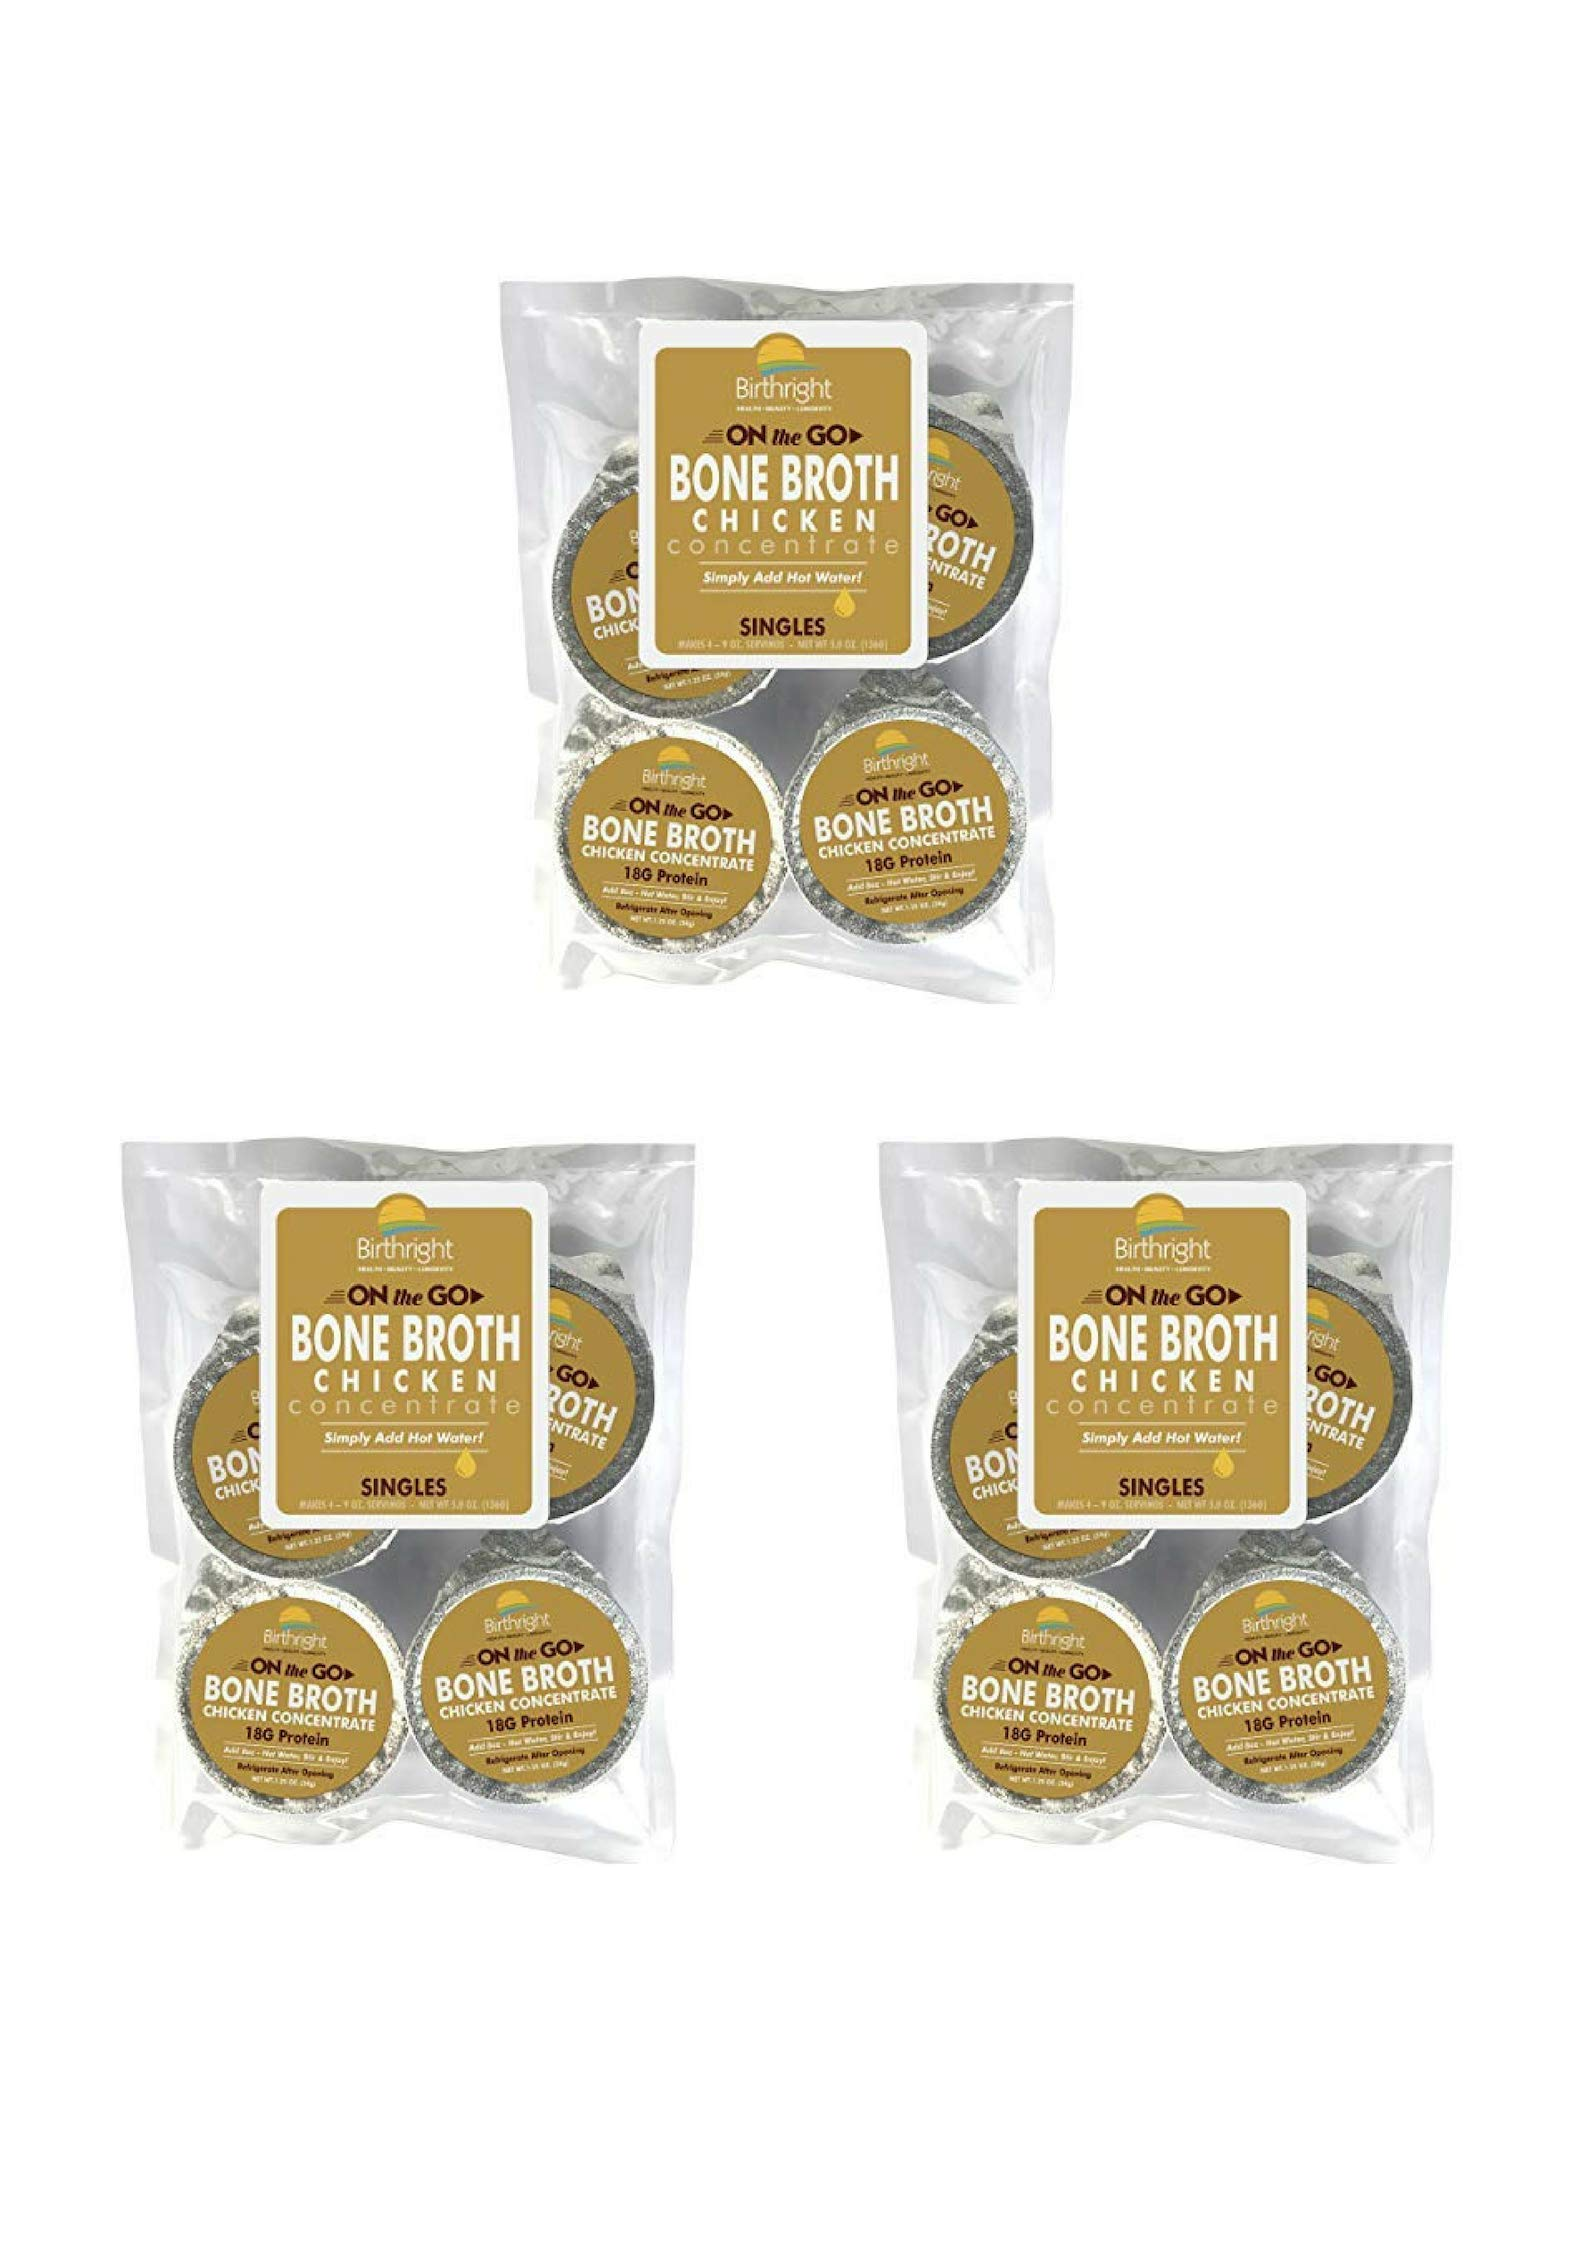 Birthright Chicken Bone Broth Concentrate - Organic Grass Fed,18 Grams of Protein, 15 Grams of Collagen - 12 Single Cup Servings